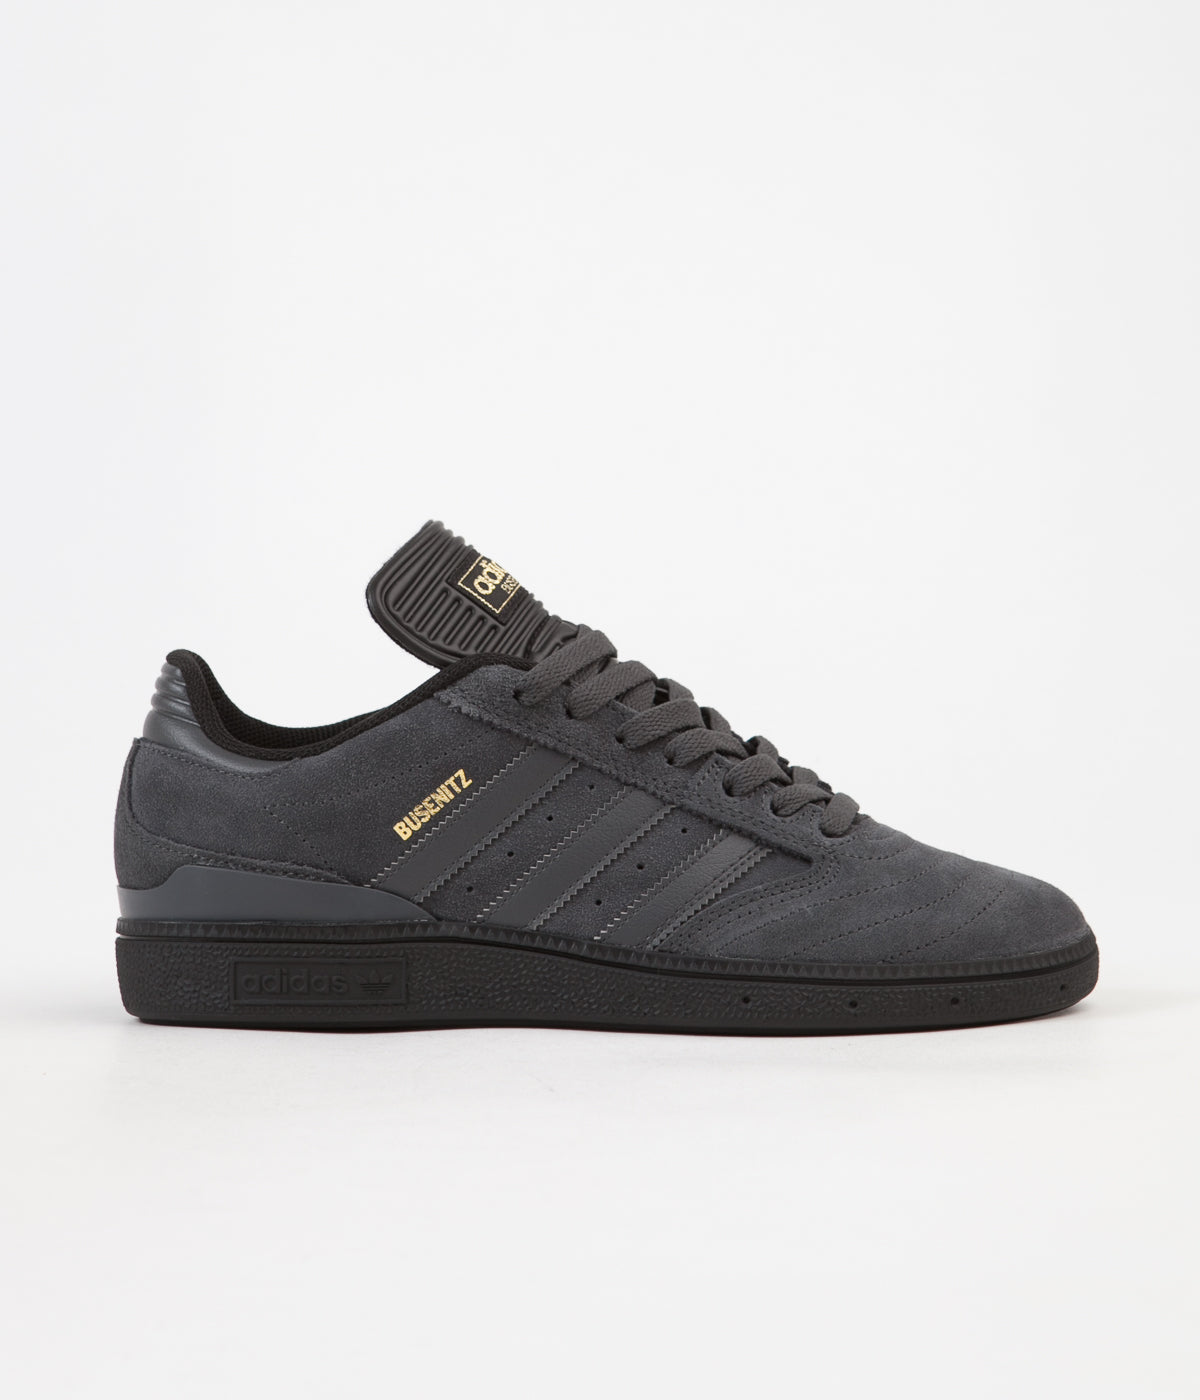 newest 56382 c06fa ... Adidas Busenitz Pro Shoes - Core Black  Solid Grey  Gold Foil ...